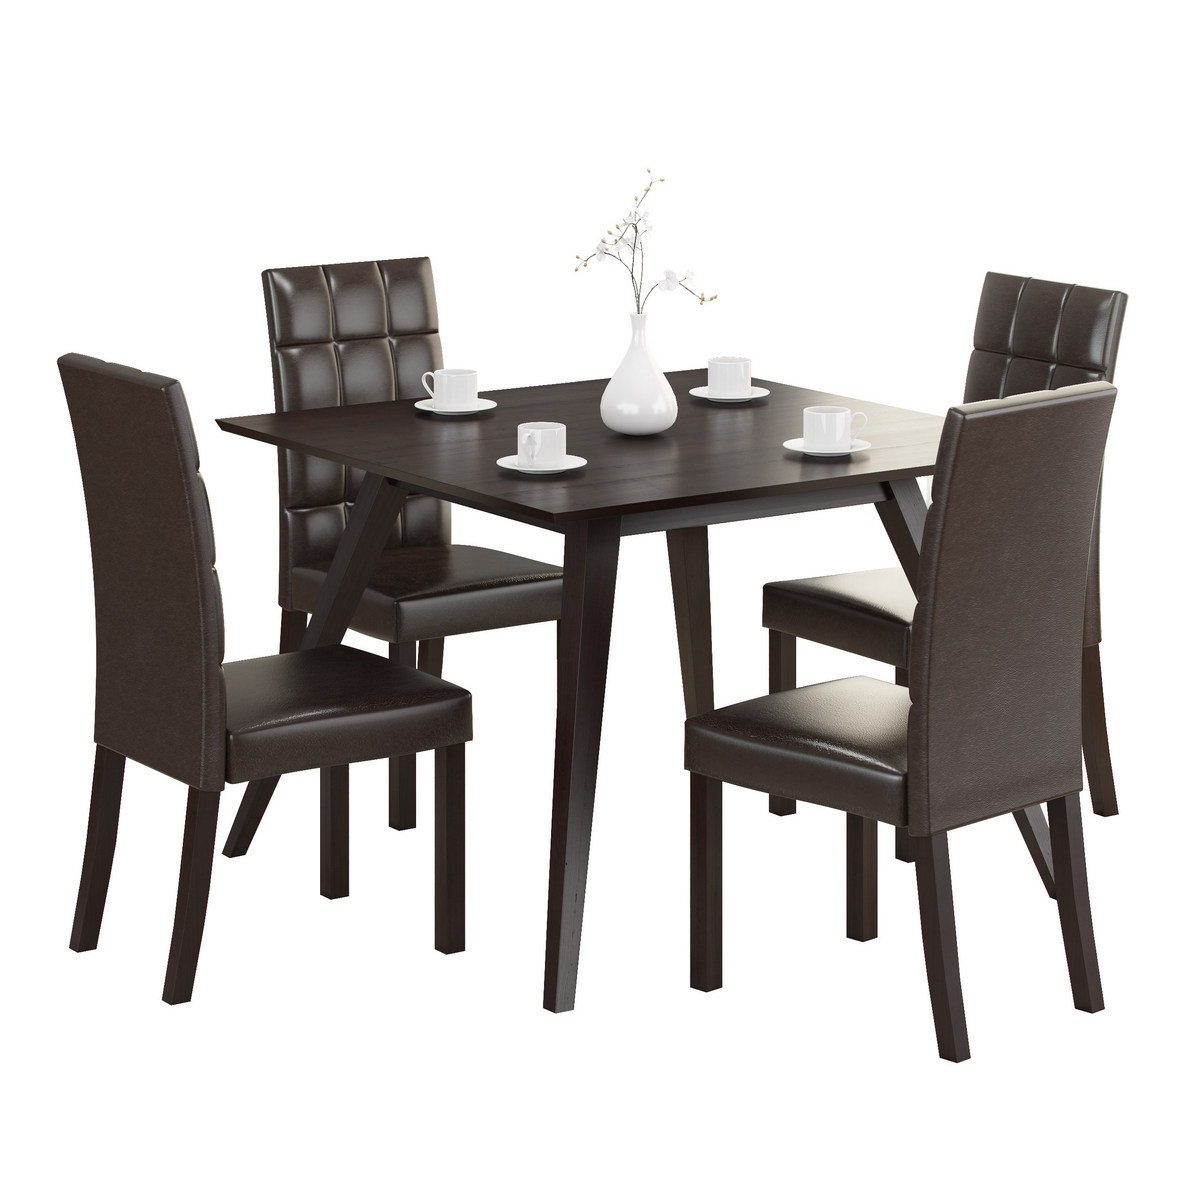 Dining Set Dark Brown Leatherette Chairs